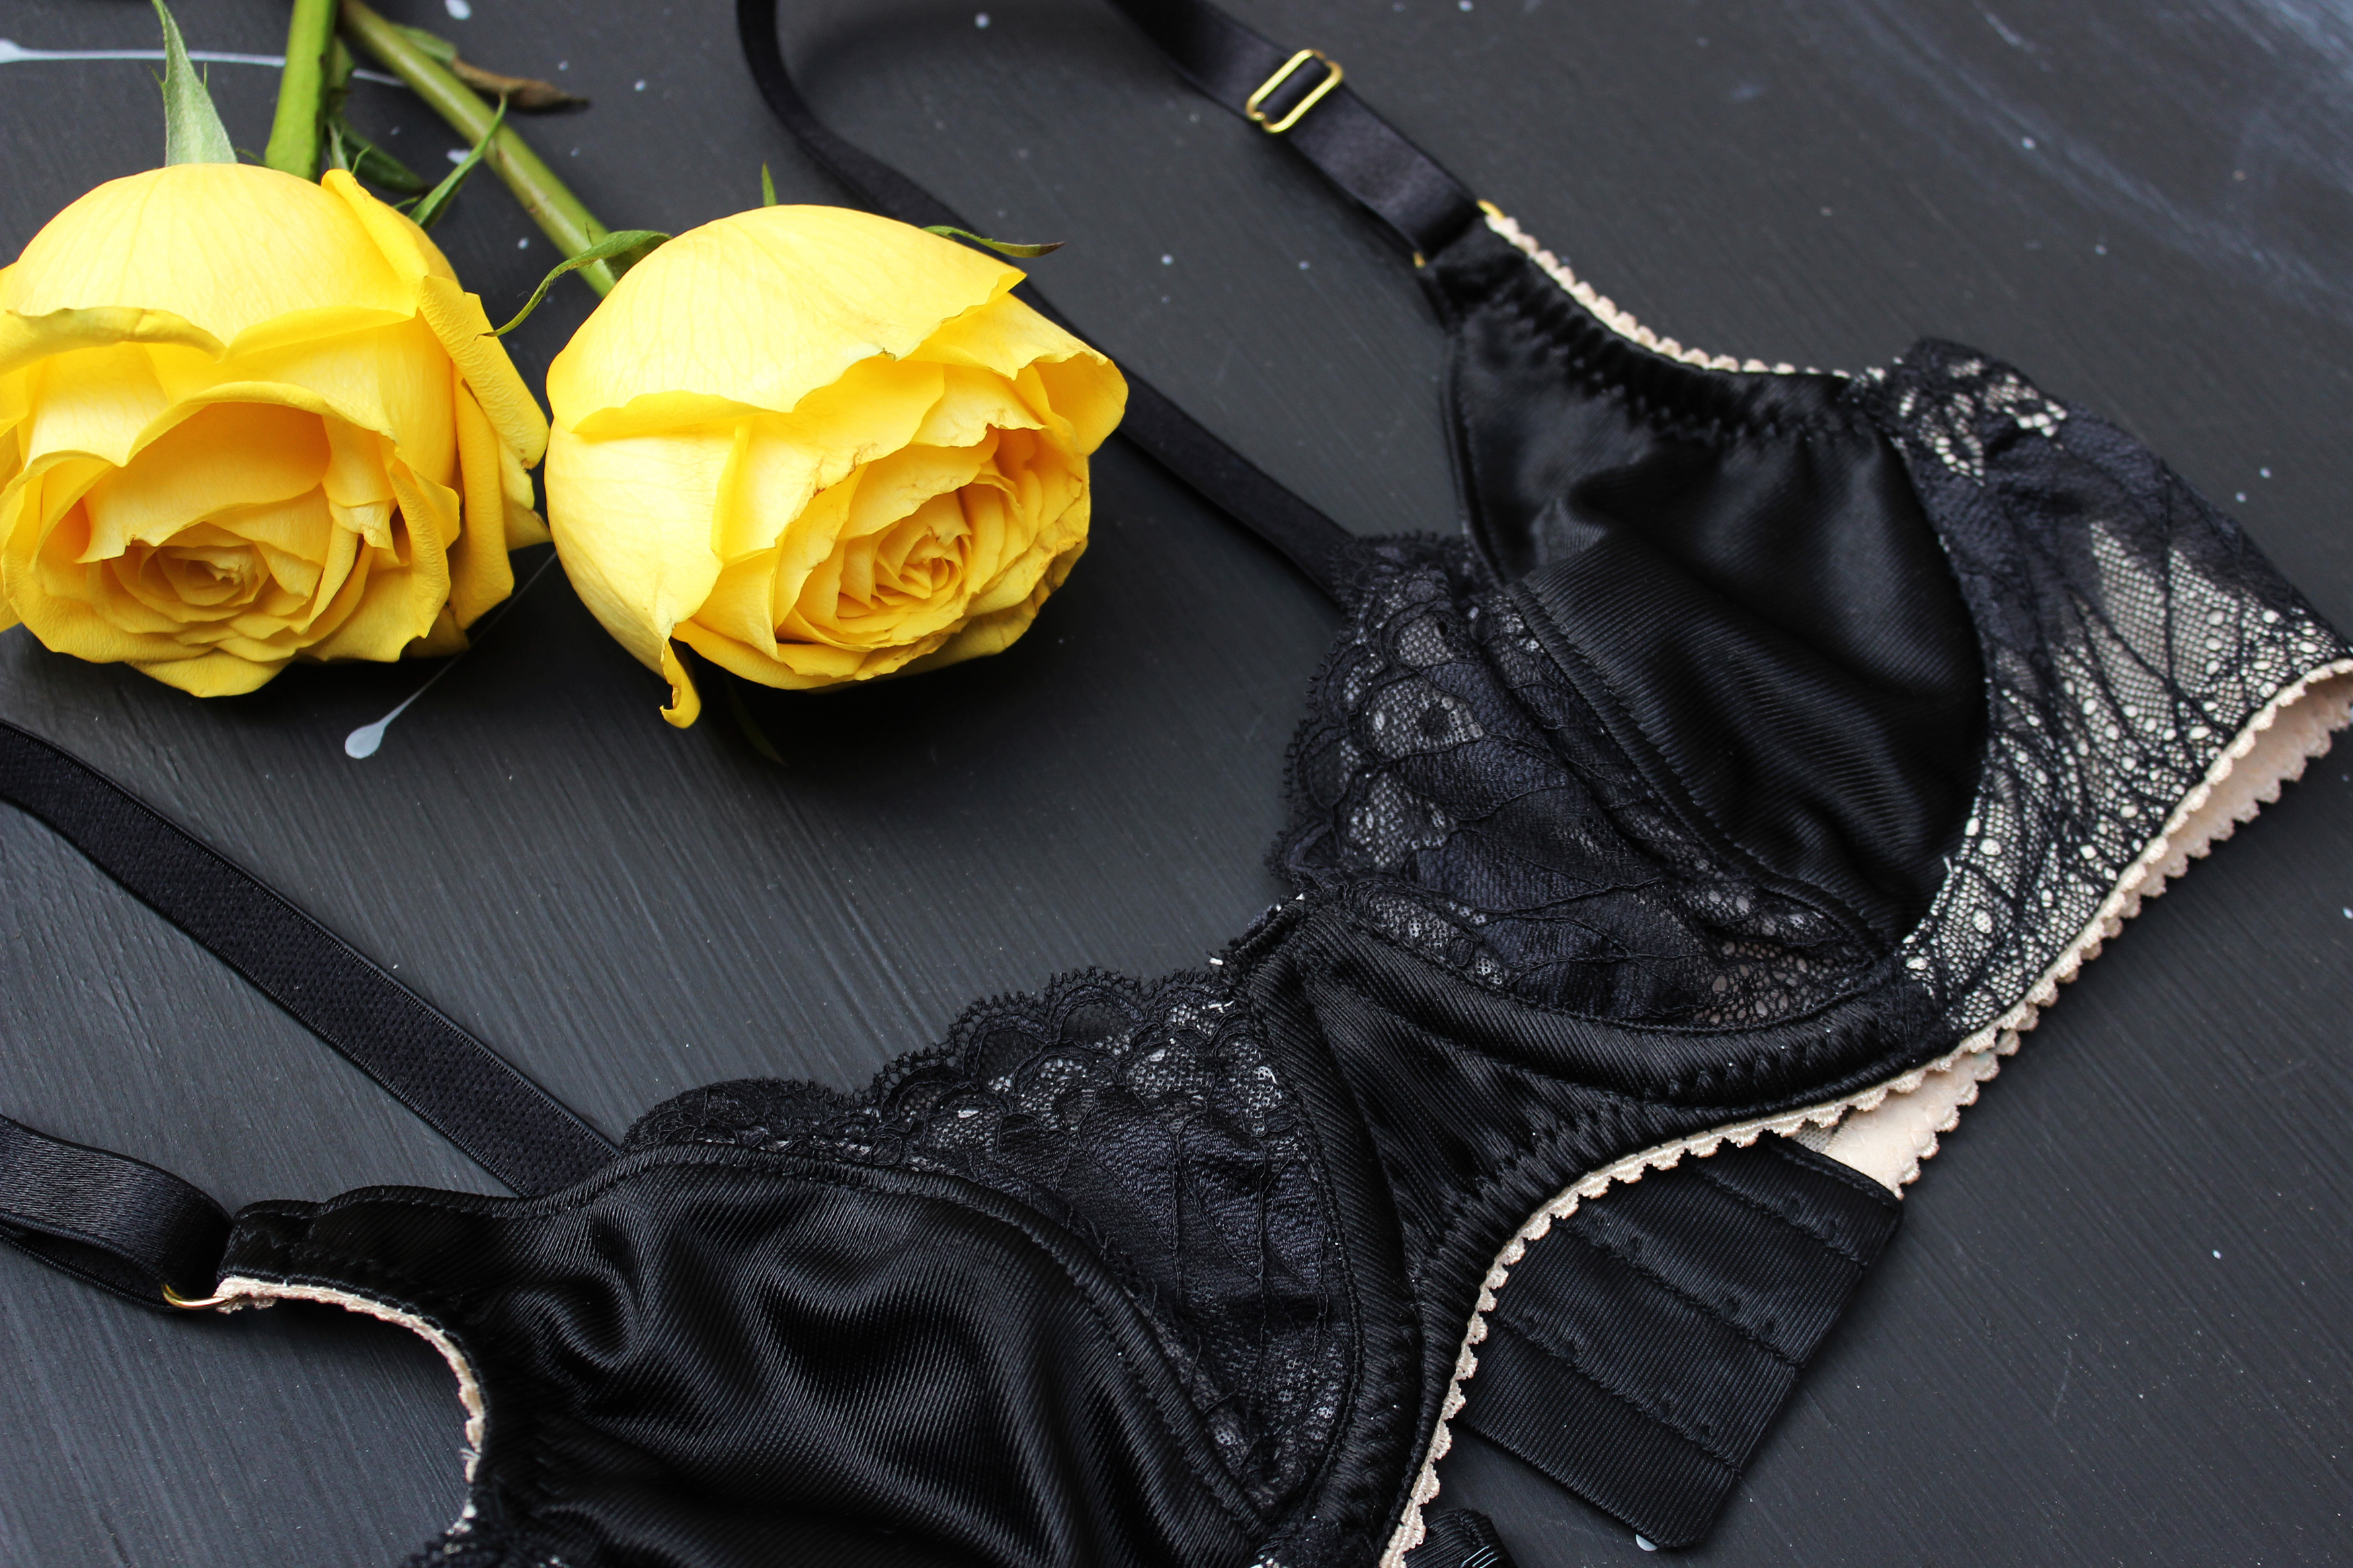 DIY Black Peach Merckwaerdigh Mix30 Bra Tailor Made Shop